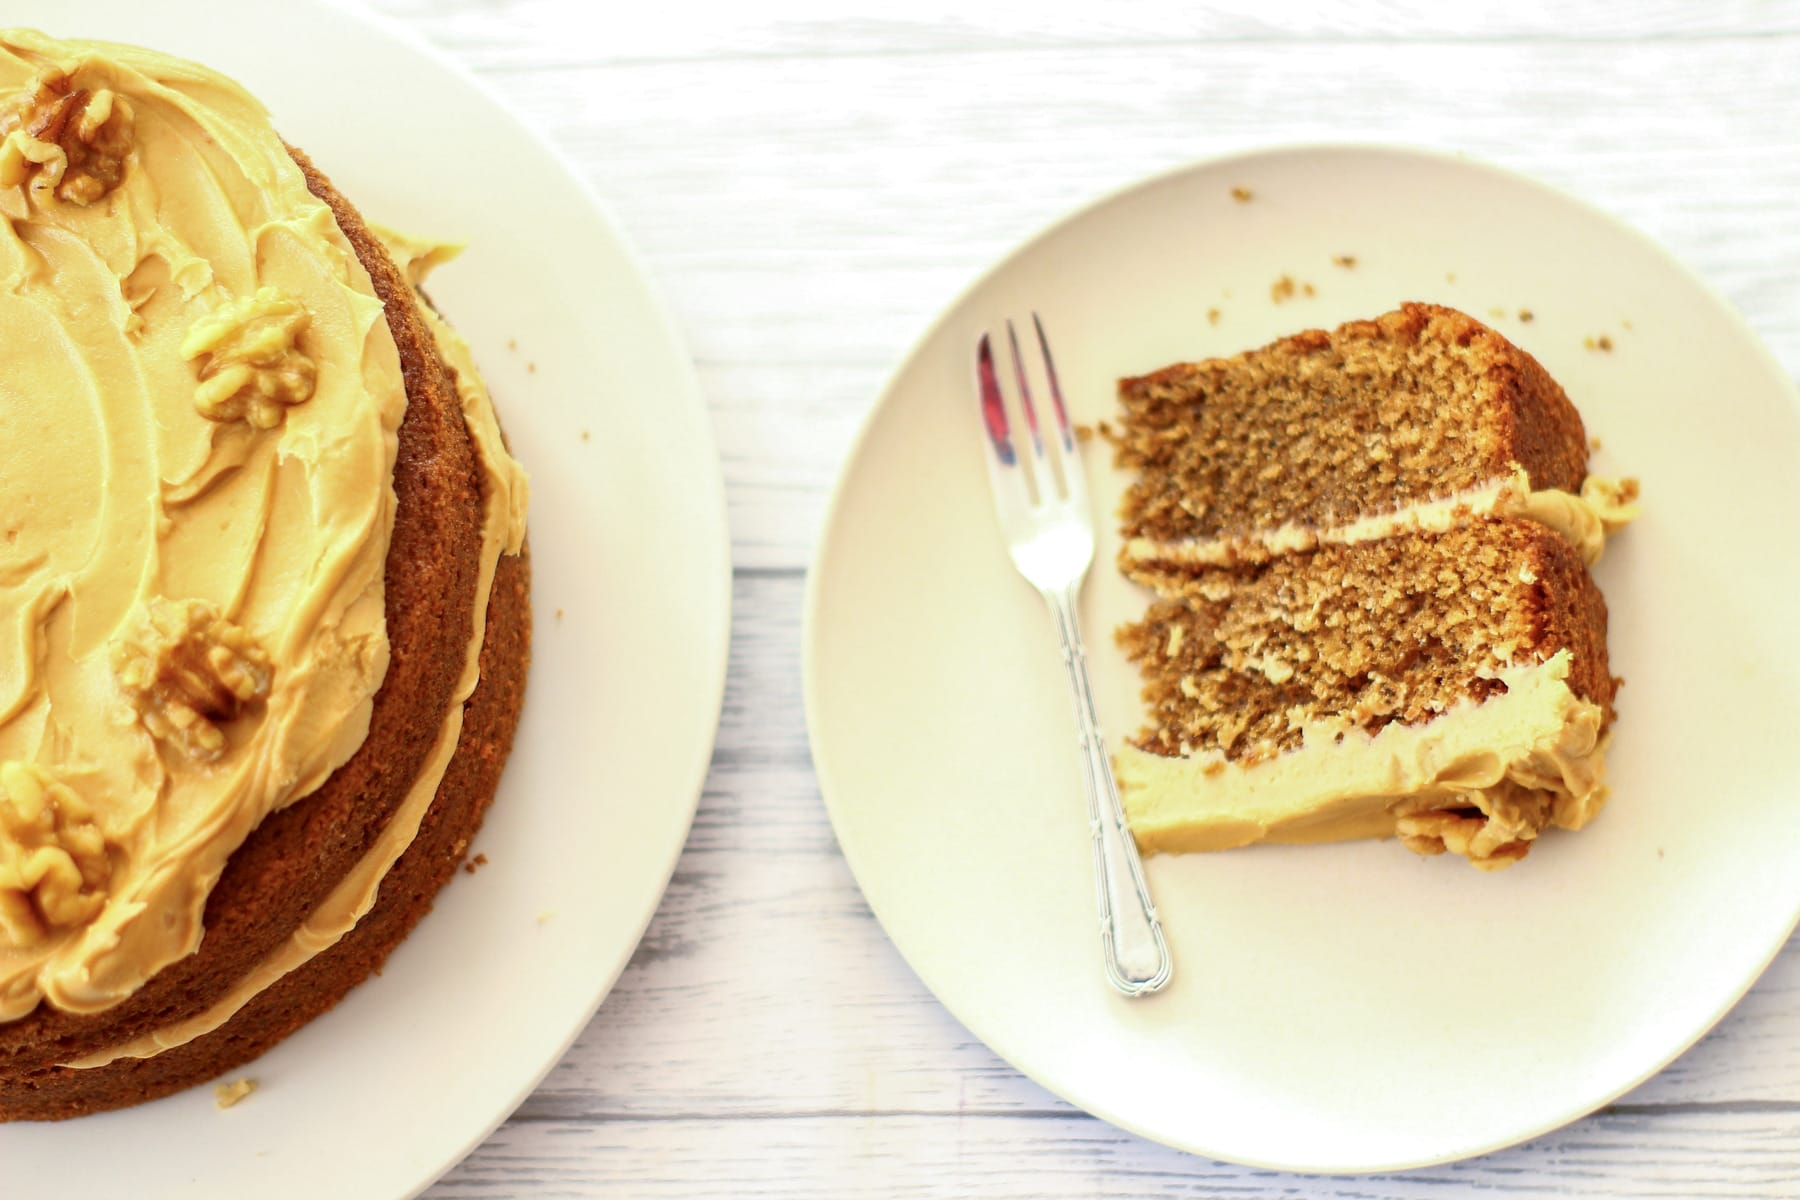 coffee and walnut cake on a plate